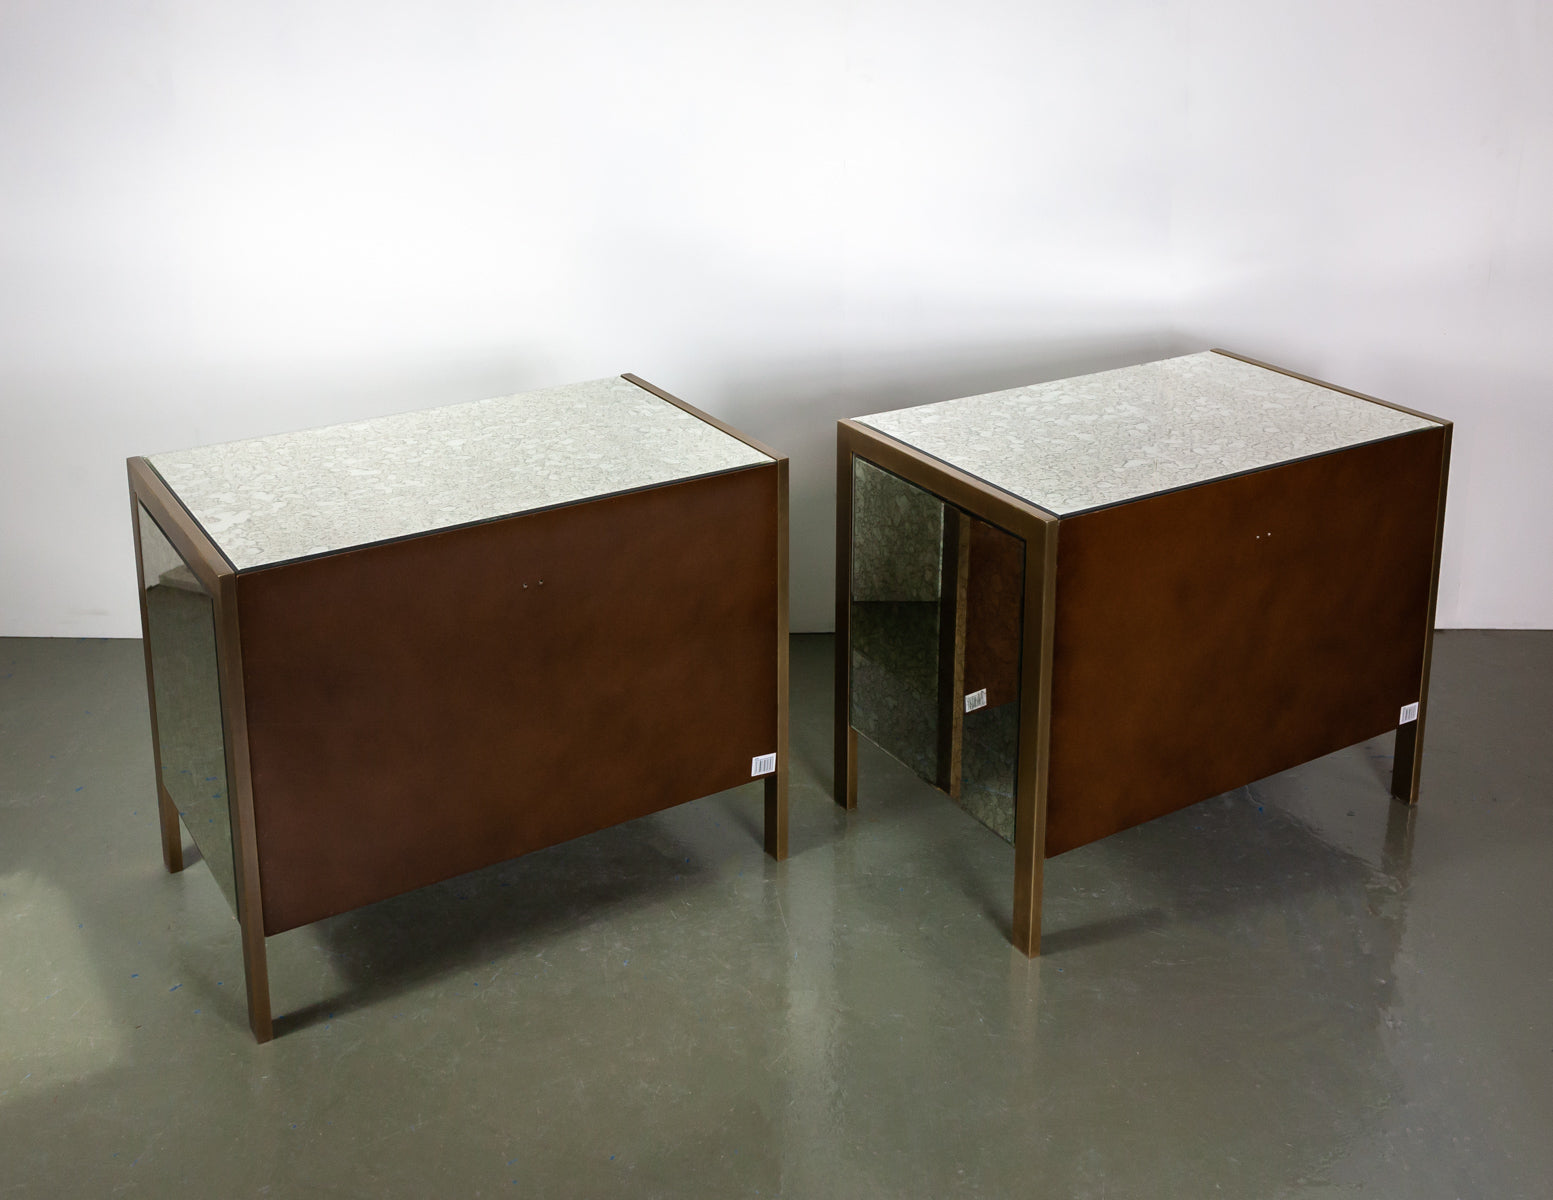 RV Astley Bedside Tables (2 units)